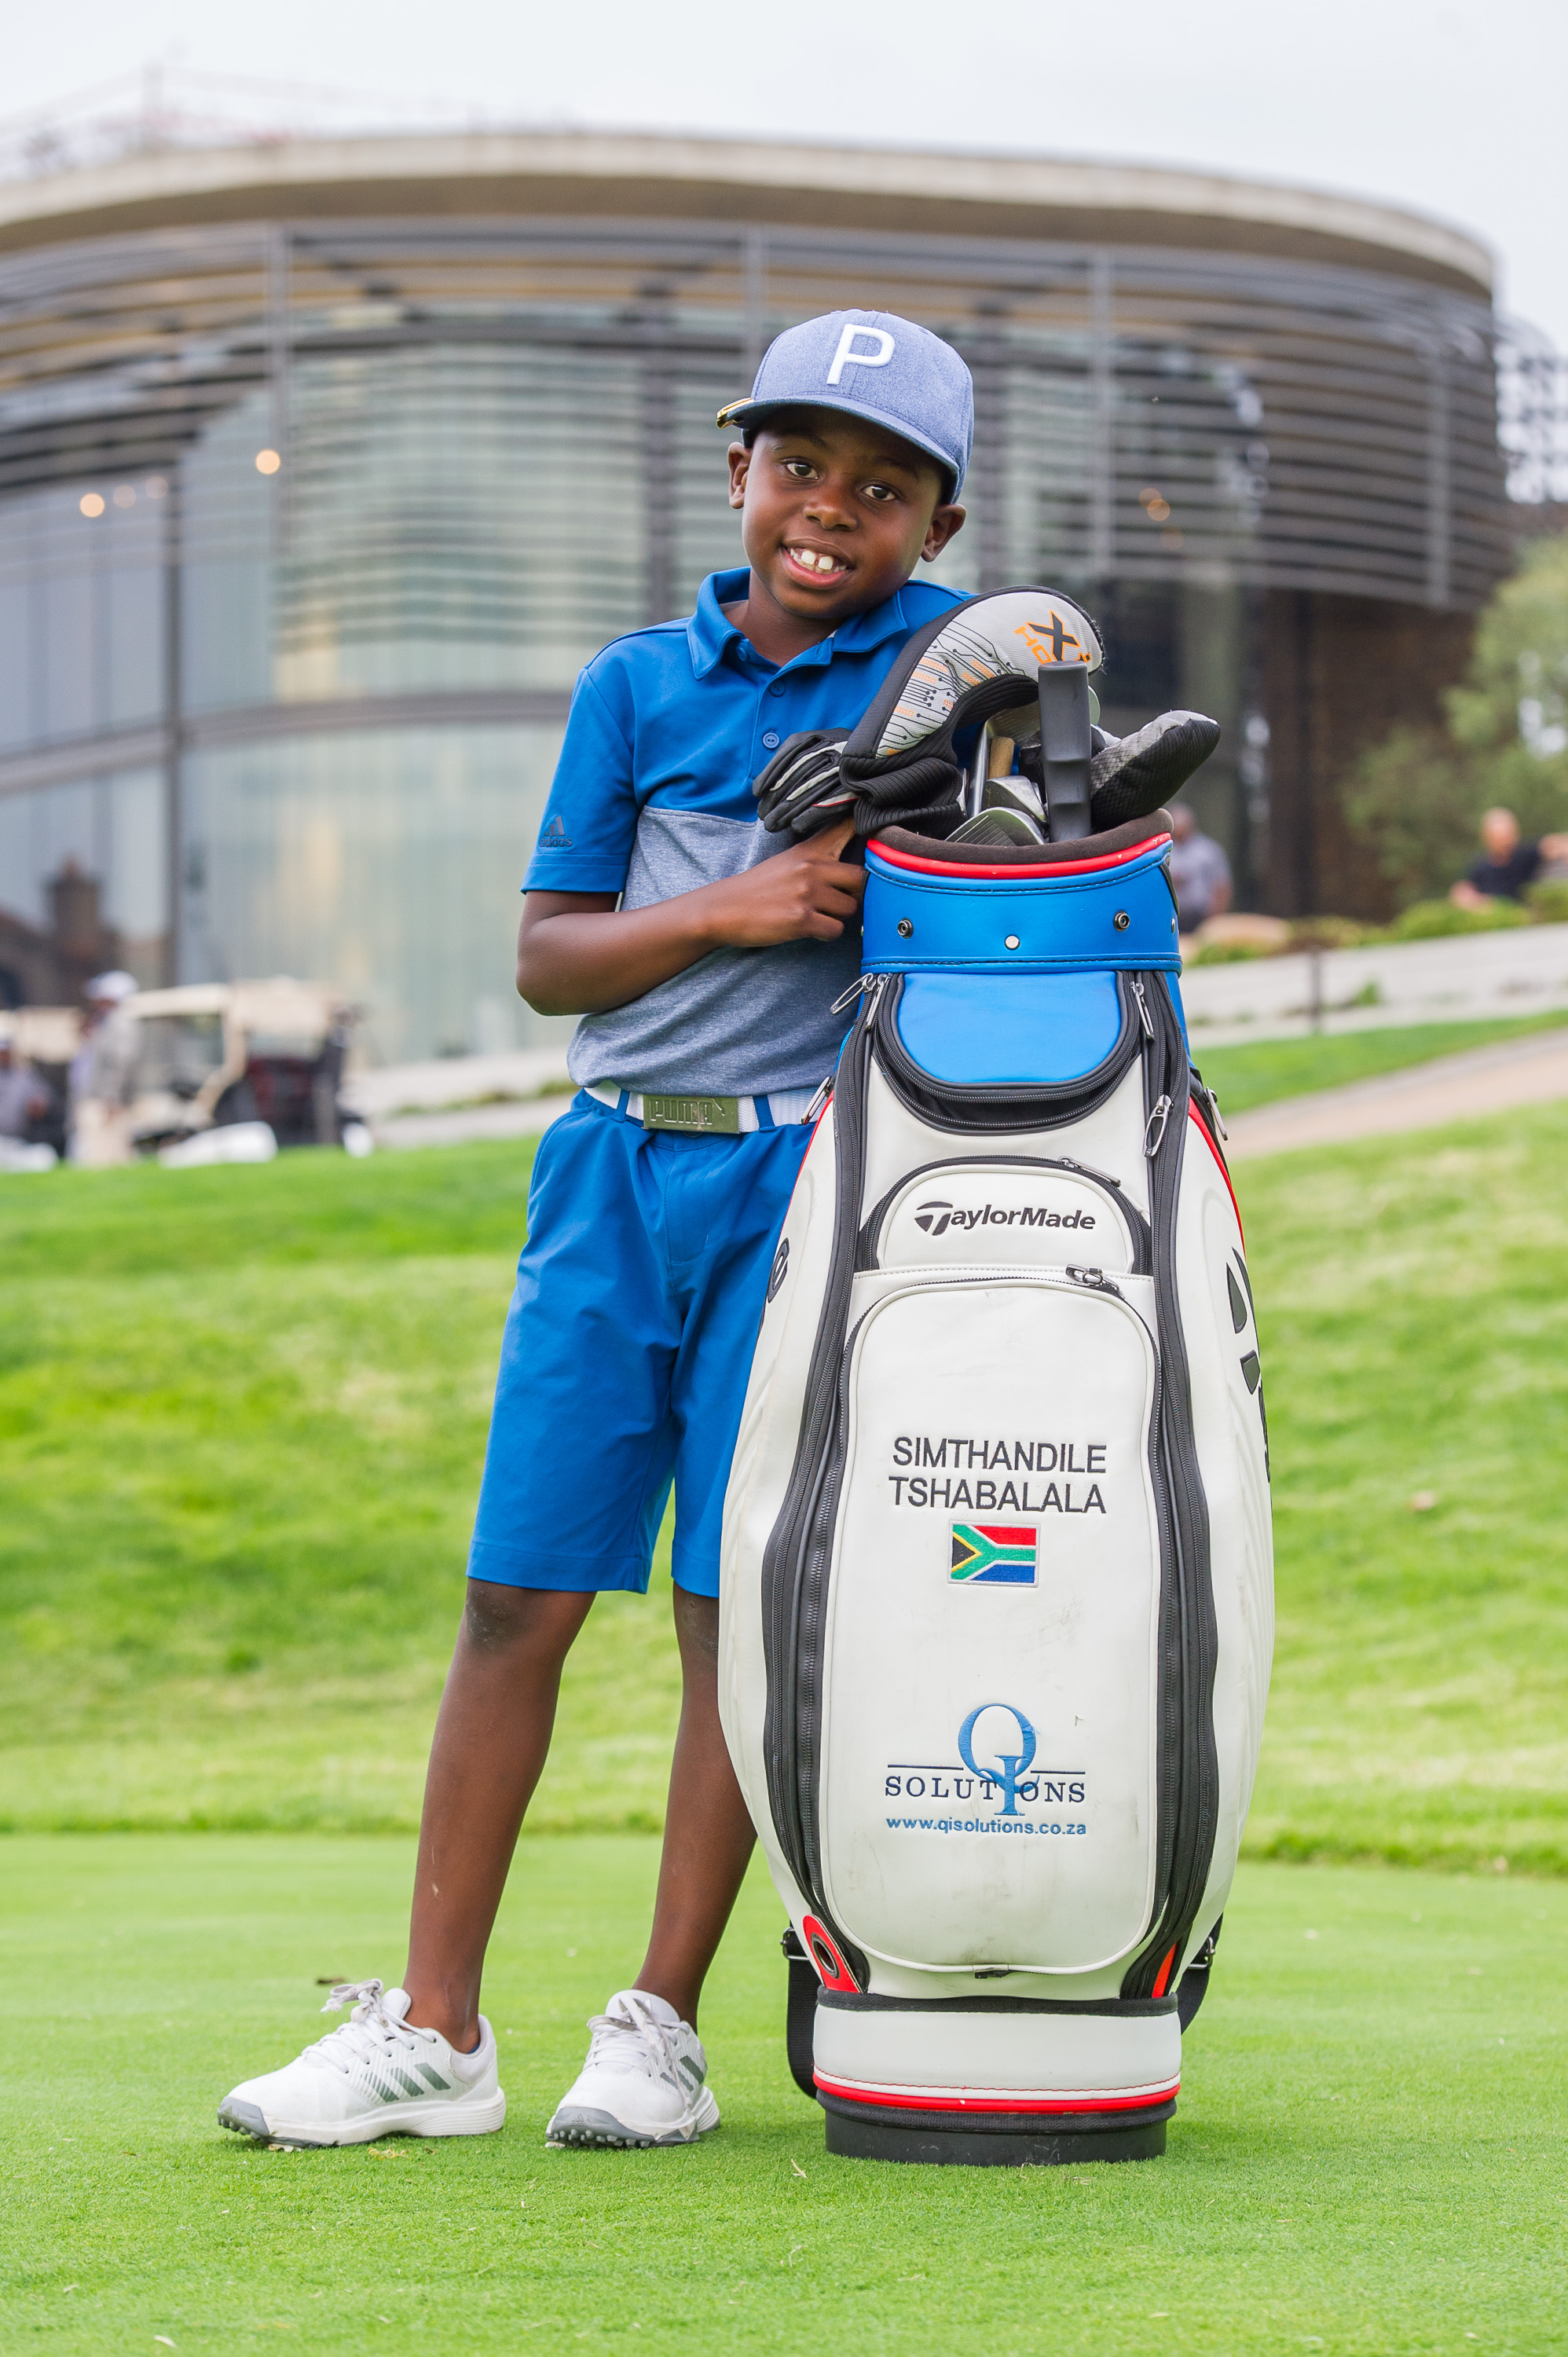 South African golfer Simthandile Tshabalala. Pic credit: Good News Daily